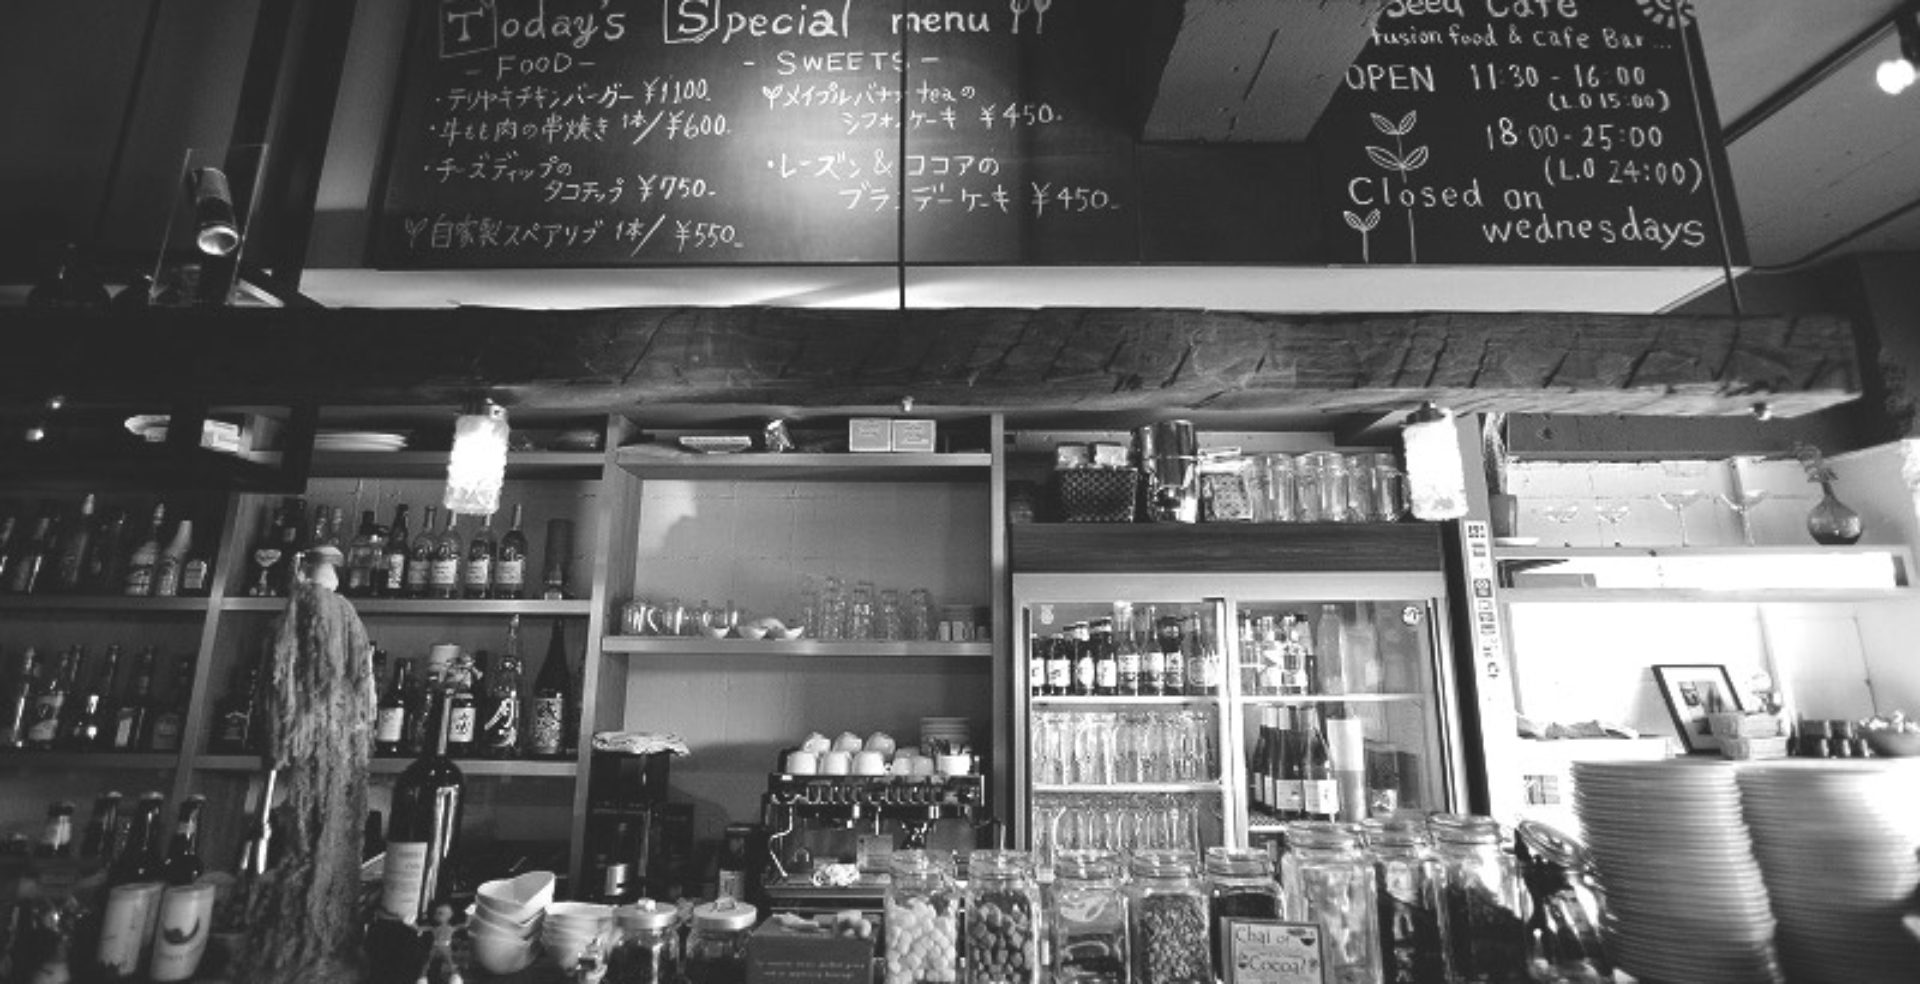 R.Seed cafe|アールシードカフェ | 名古屋市緑区徳重